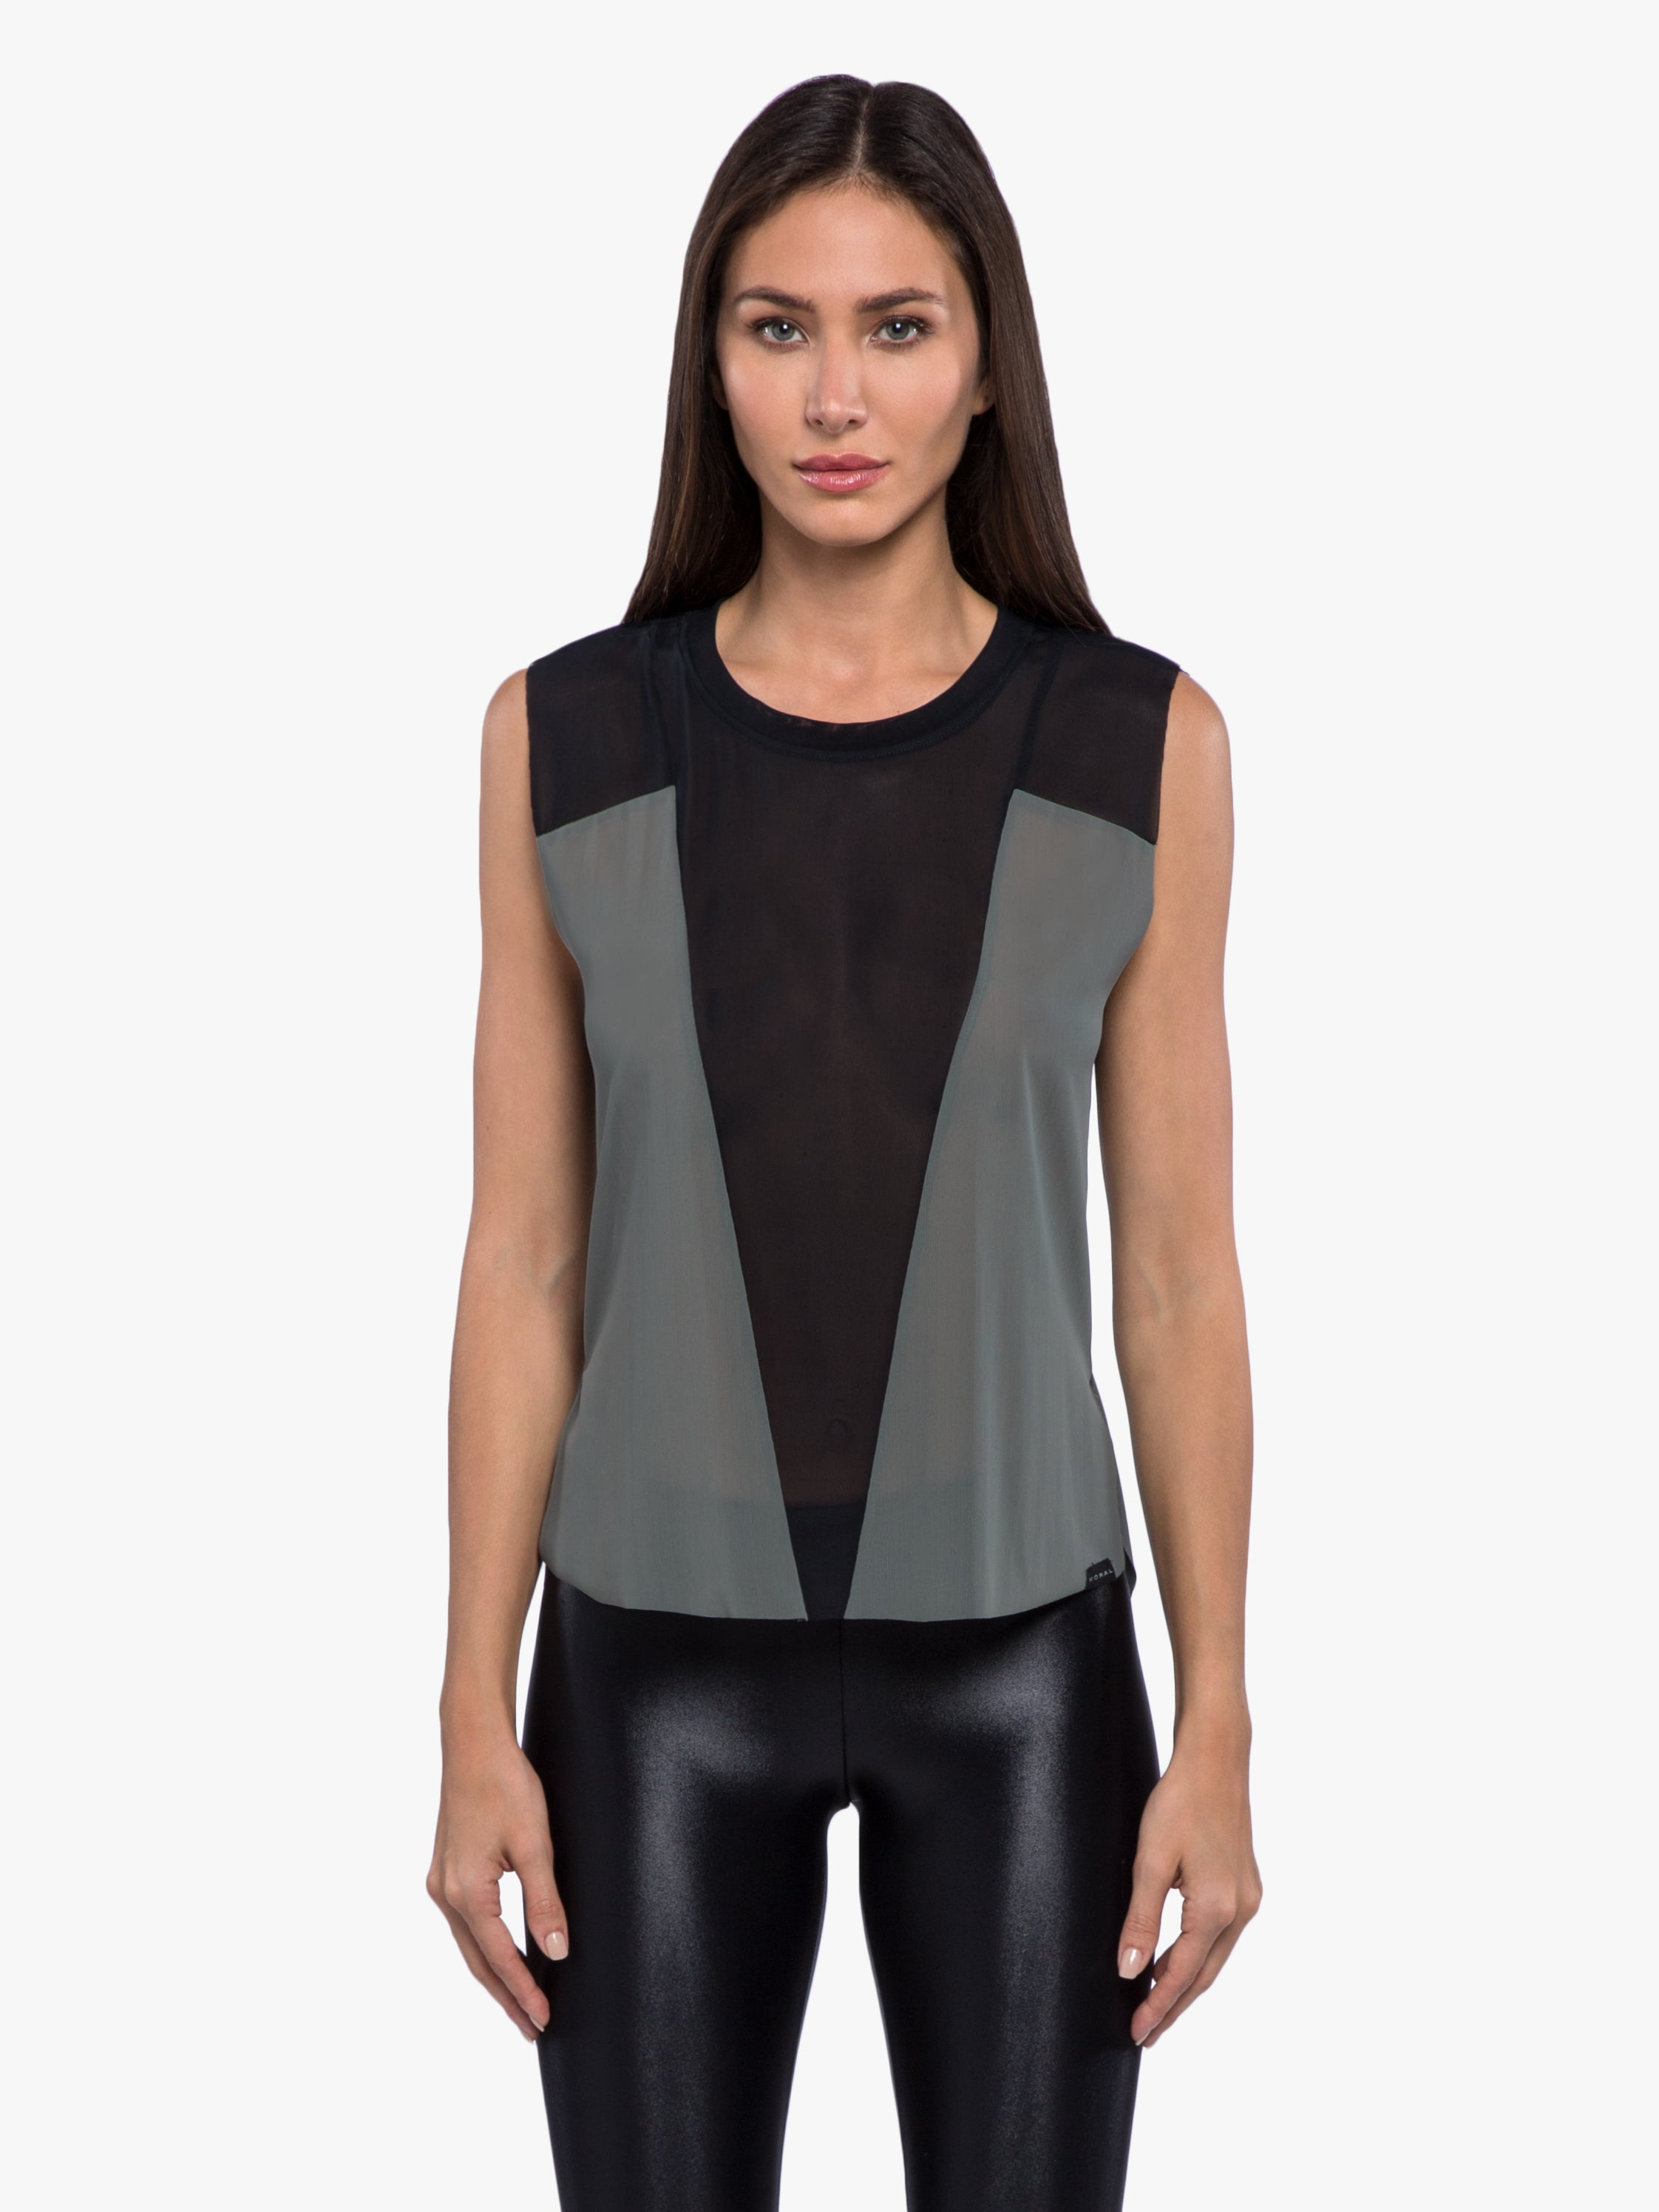 Brink Power Mesh Top - Black/Agave